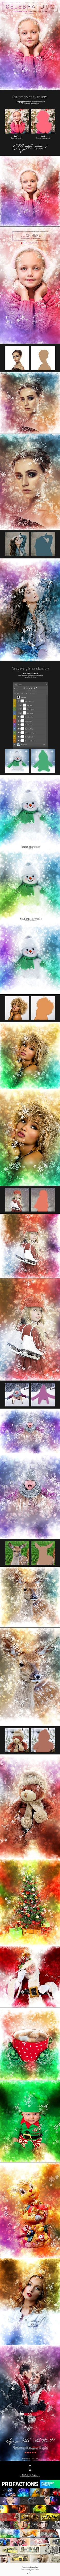 Celebratum 2 - Christmas Snowflakes #Photoshop Action - #Photo Effects #Actions